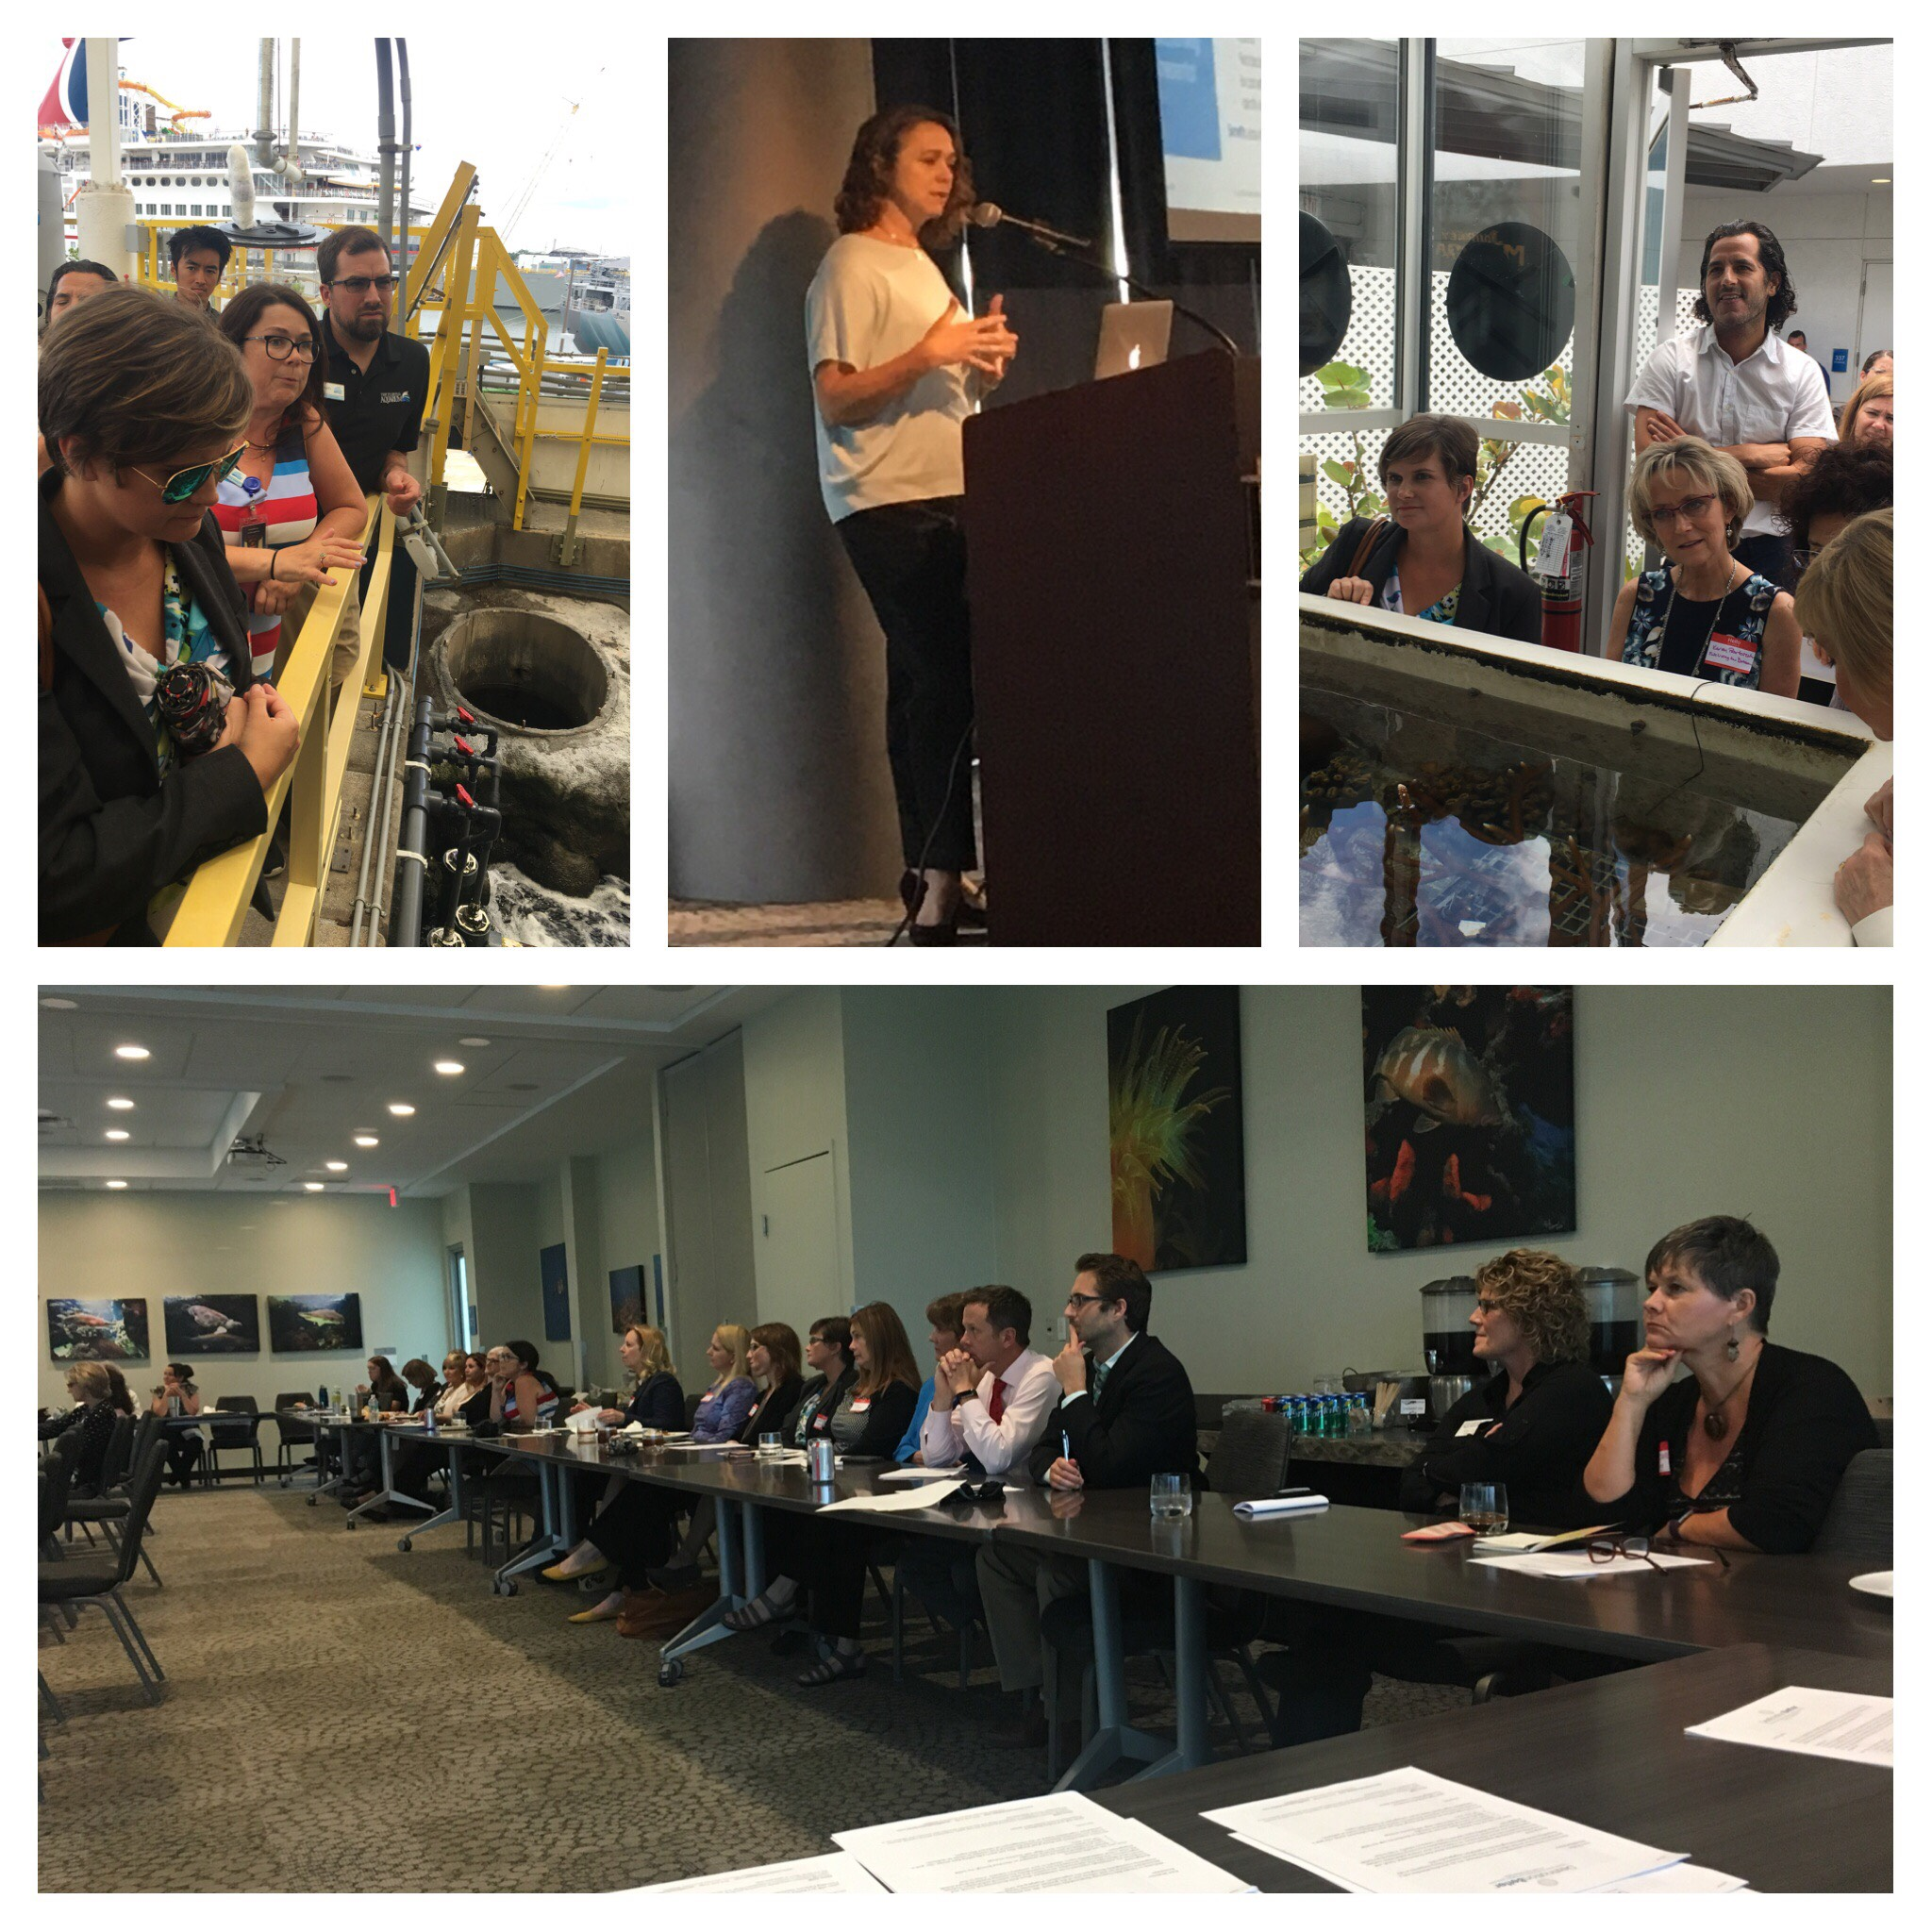 May 21, 2018 - before going on a behind-the-scenes tour at the Florida Aquarium, Destination better's founding partner,   Janet    craig,  educated attendees about the SEC-aligned, industry-specific, financially material environmental and social impacts of each organization...because investors are asking.